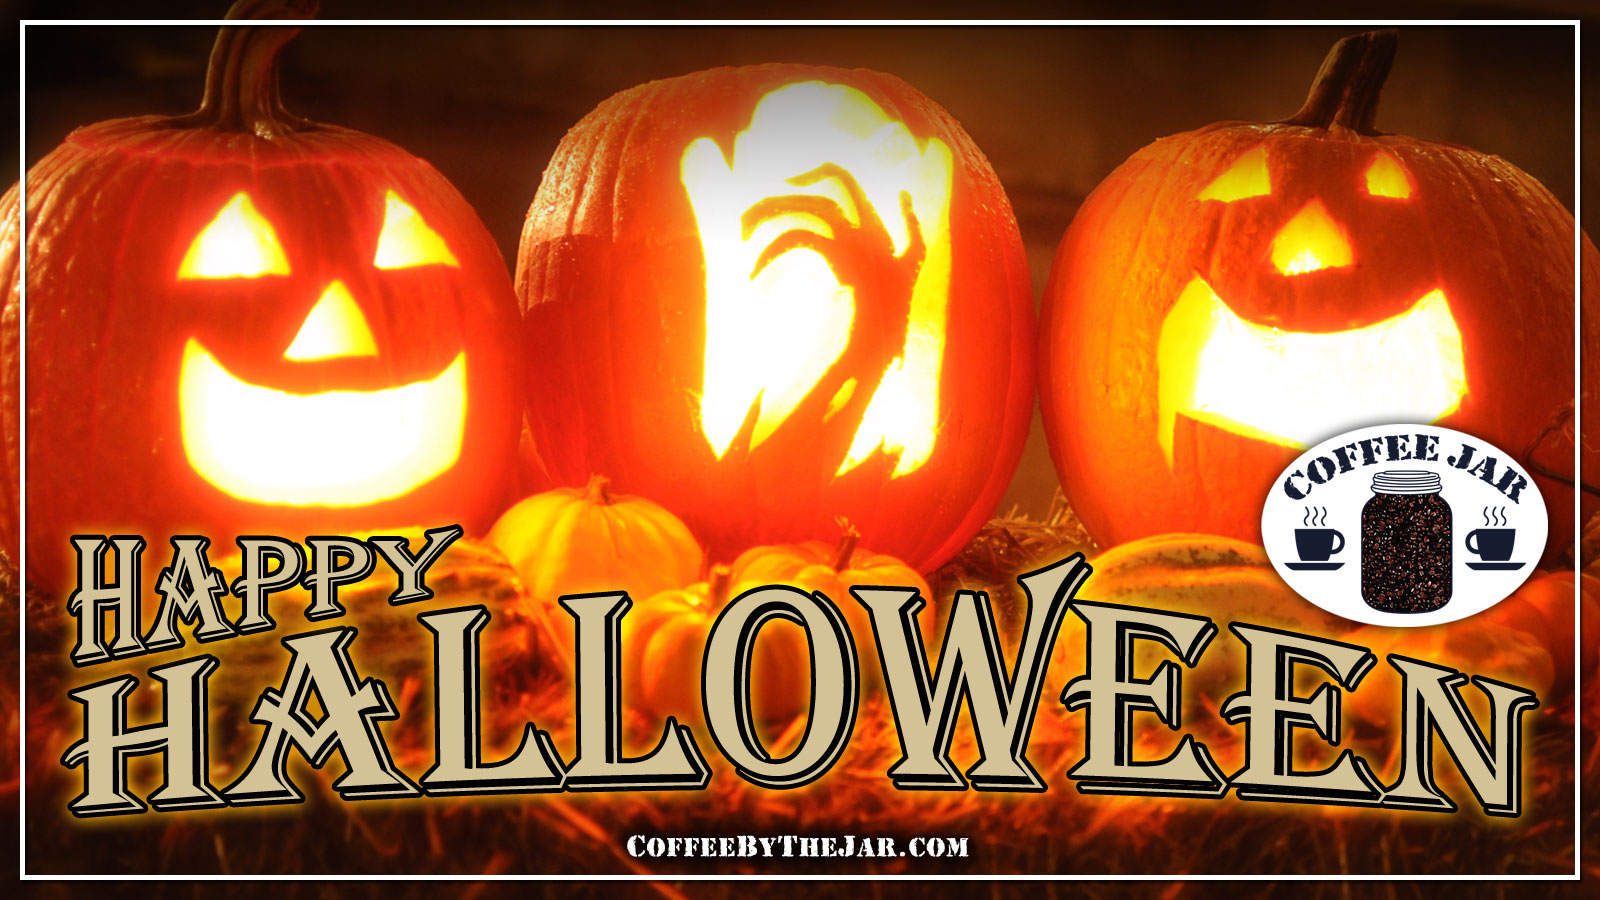 Coffee-Jar-Happy-Halloween-wallpaper01-1600x900